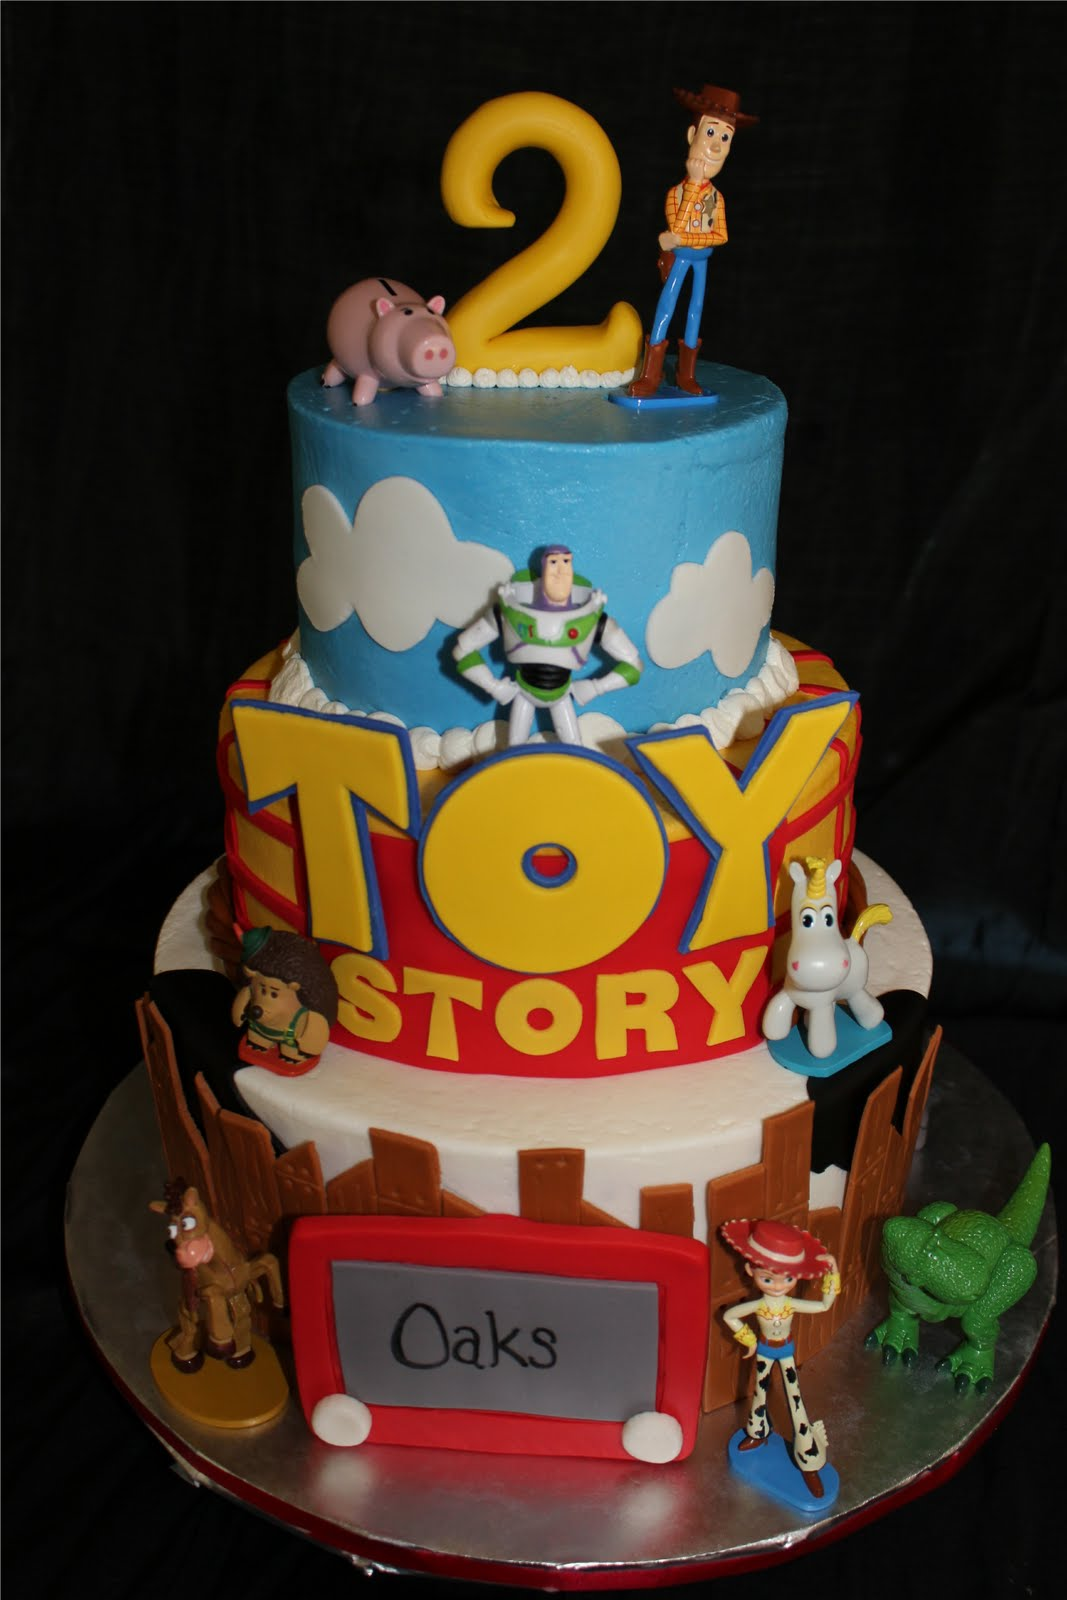 Cakes by Camille: Disney Themed Cakes